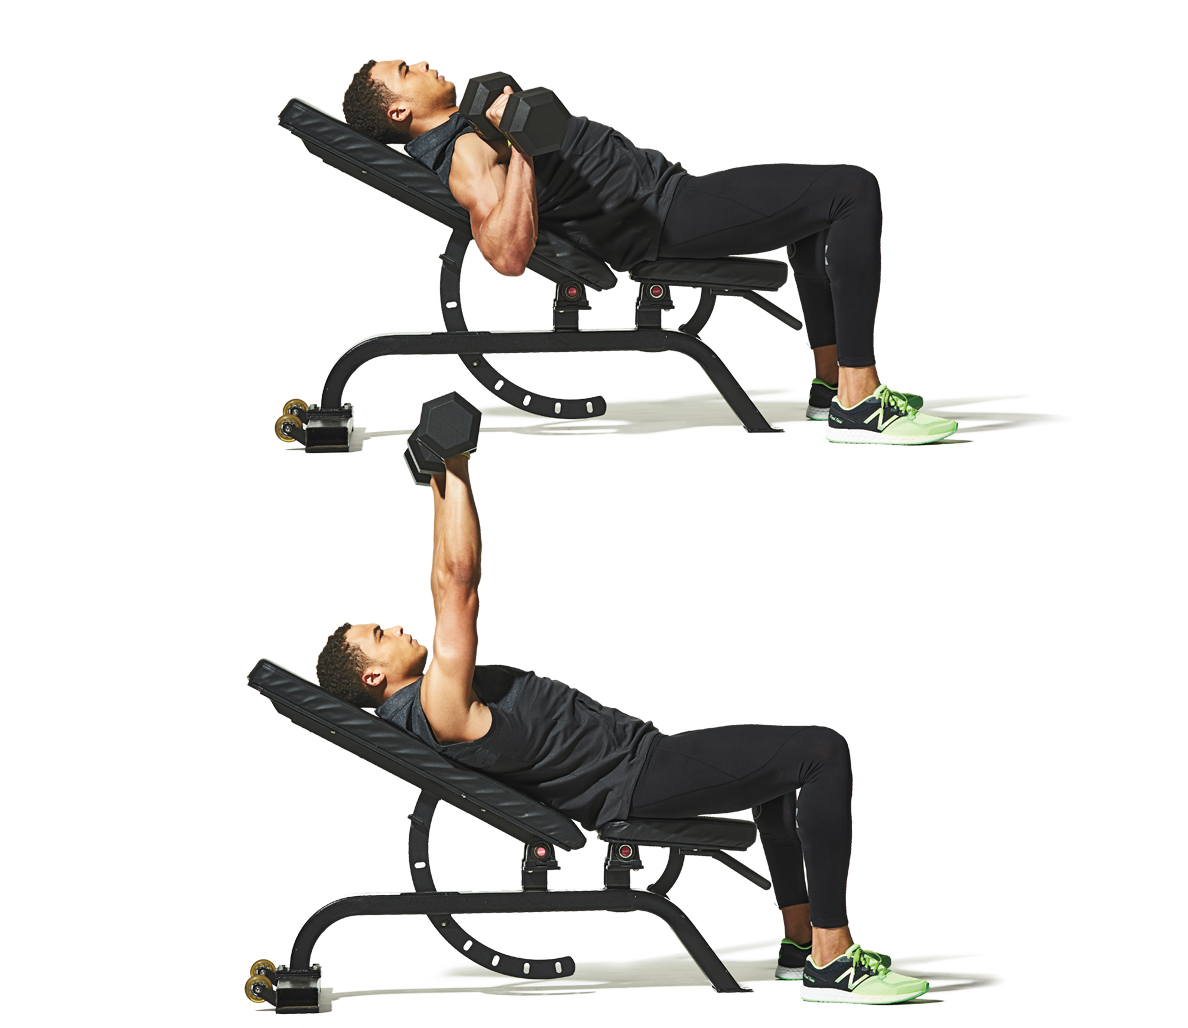 Exercise Of The Week Dumbbell Floor Press: The Powerlifting Training Plan: Week 1 Workout I